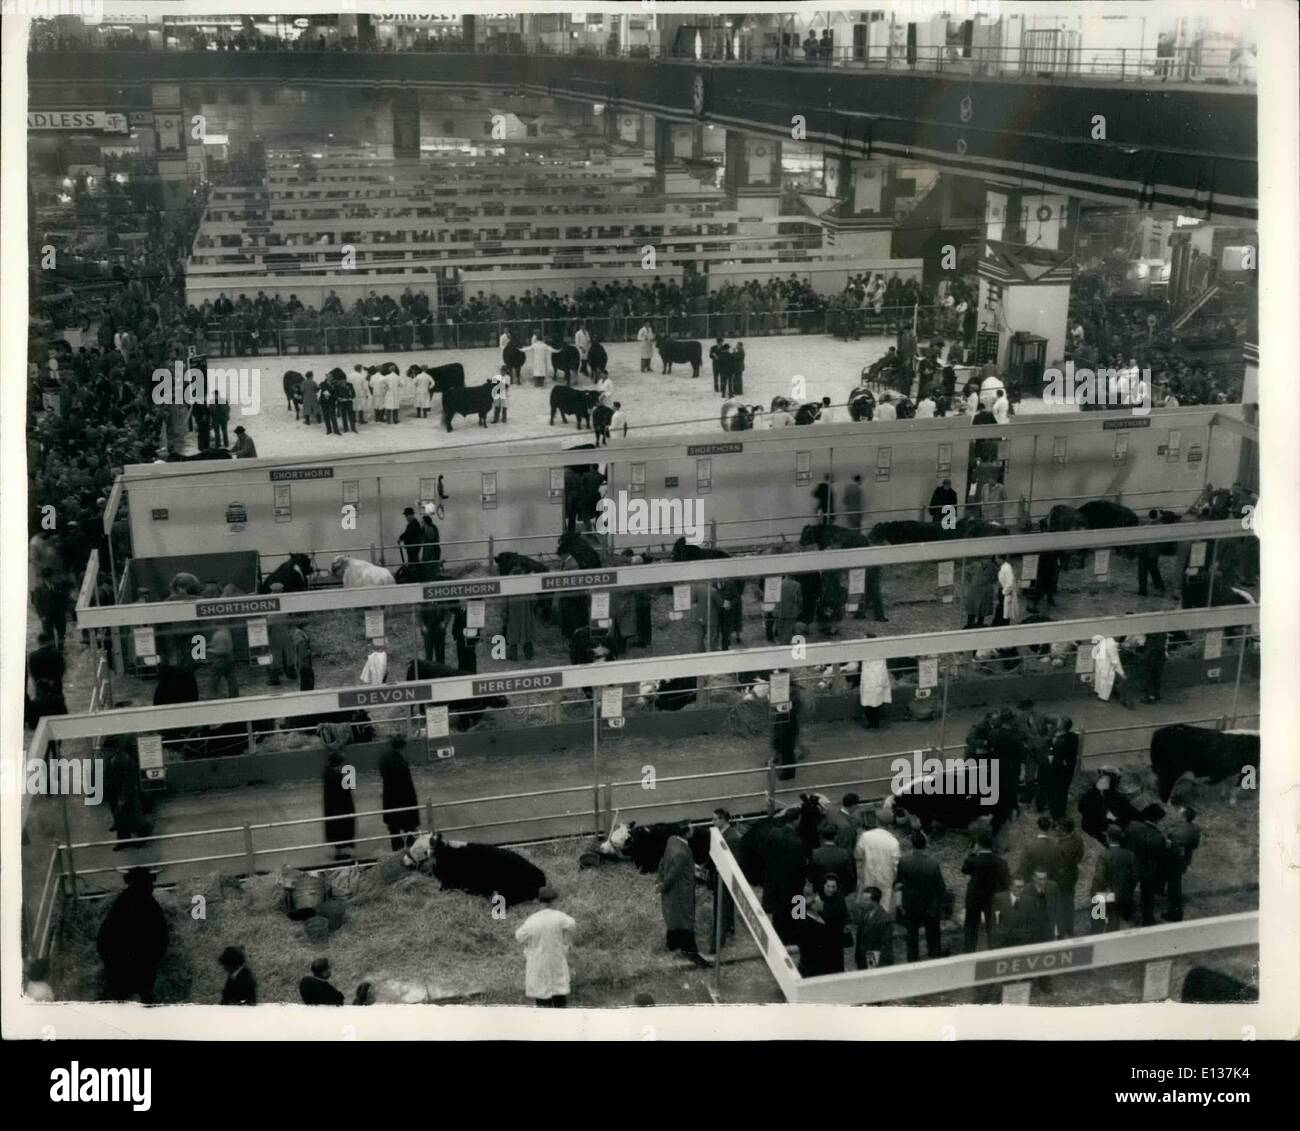 Feb. 29, 2012 - Opening of the Smithfield Show. General view: Photo shows General view after the opening of the - Stock Image